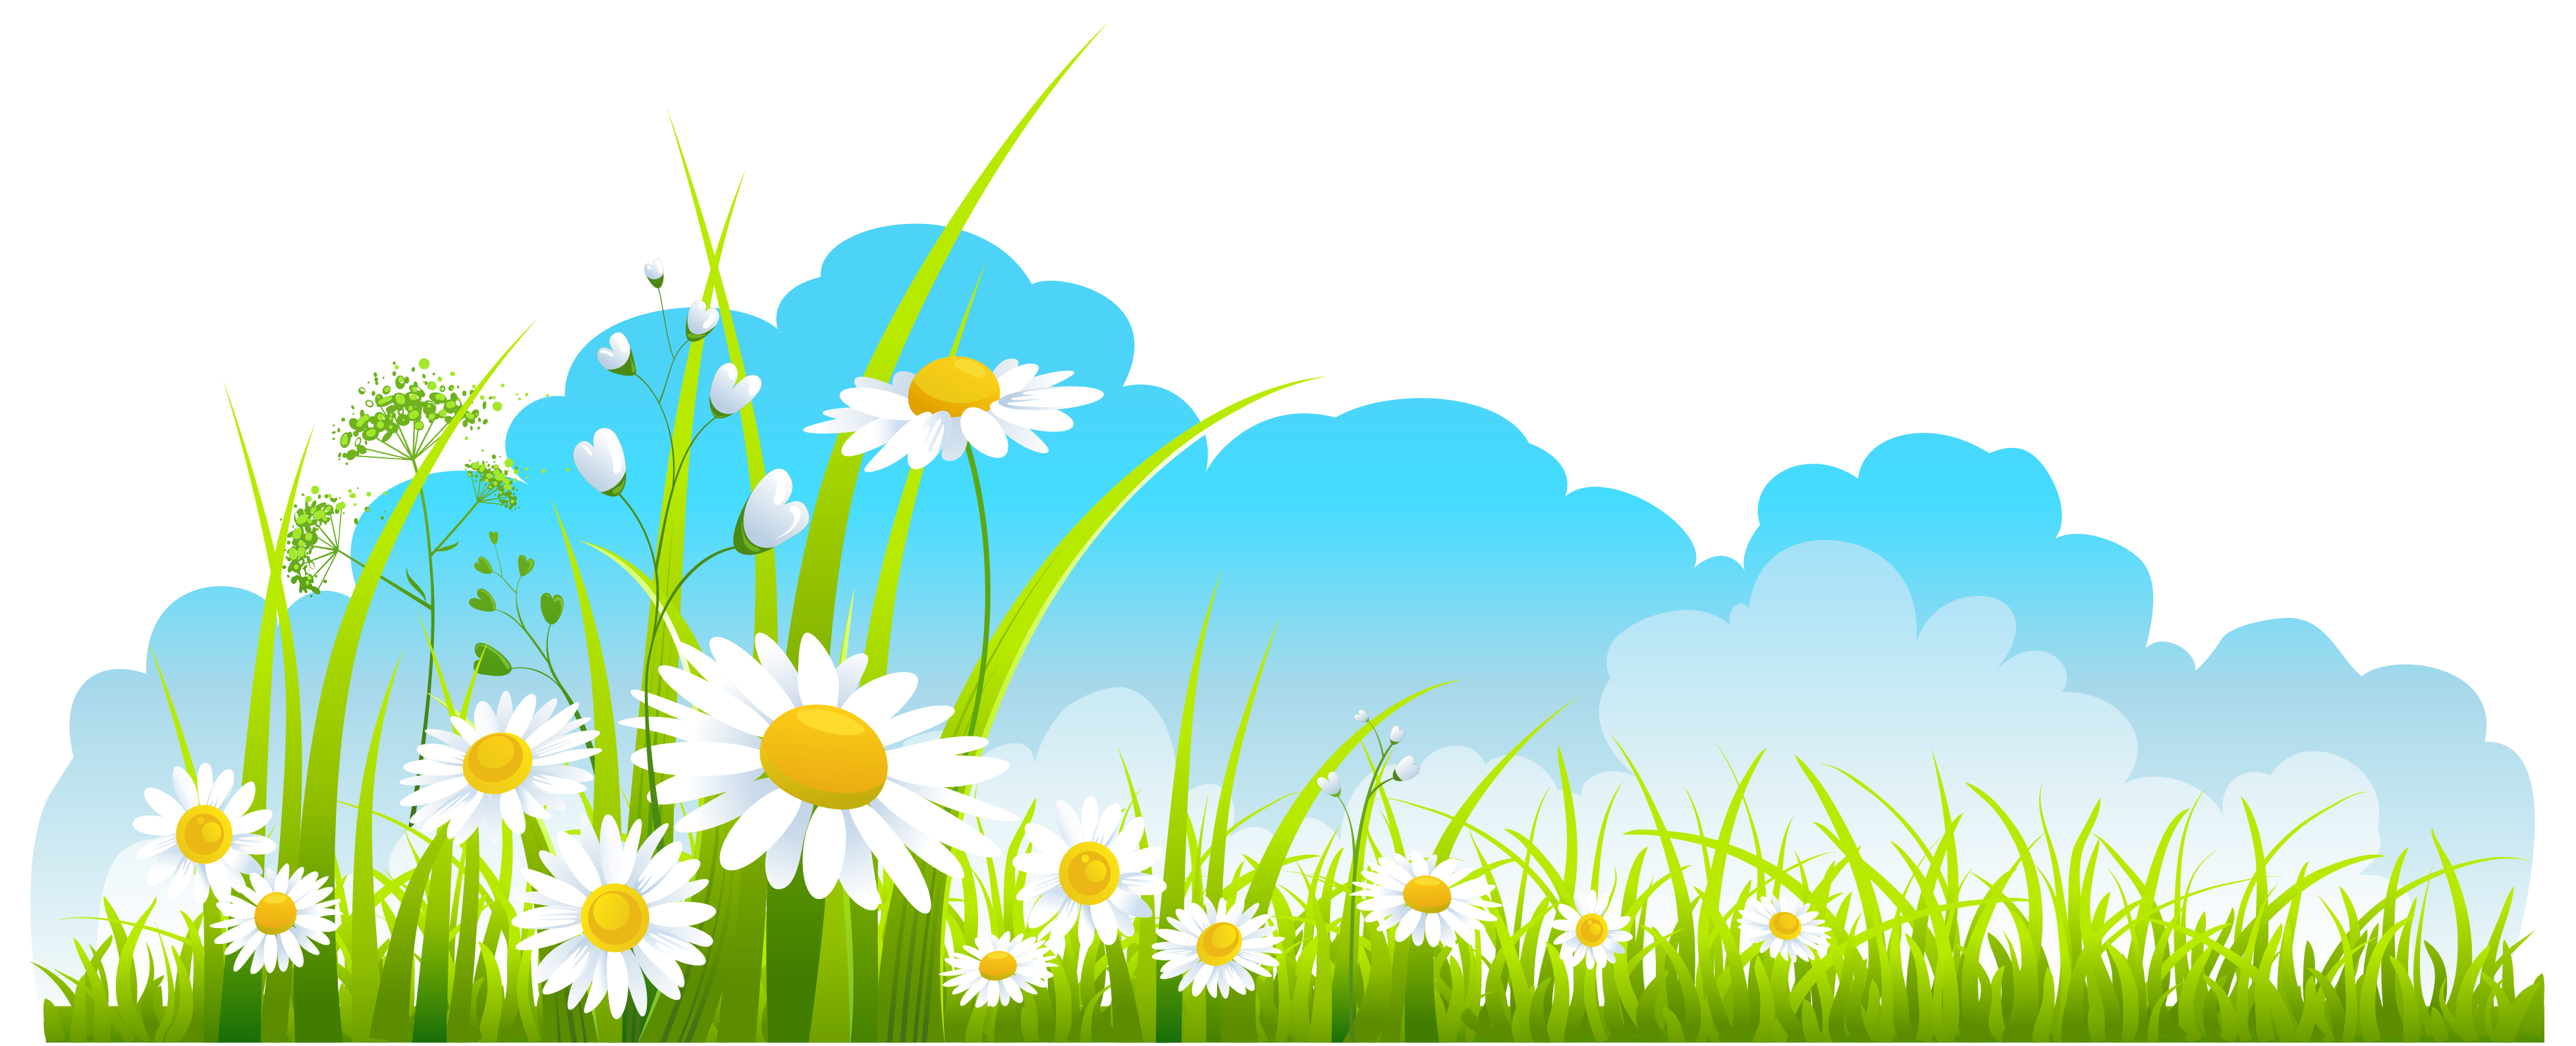 Spring Decor Sky Grass And Camomile Png Clipart Clipart Best Clip Art Floral Drawing Flower Wallpaper